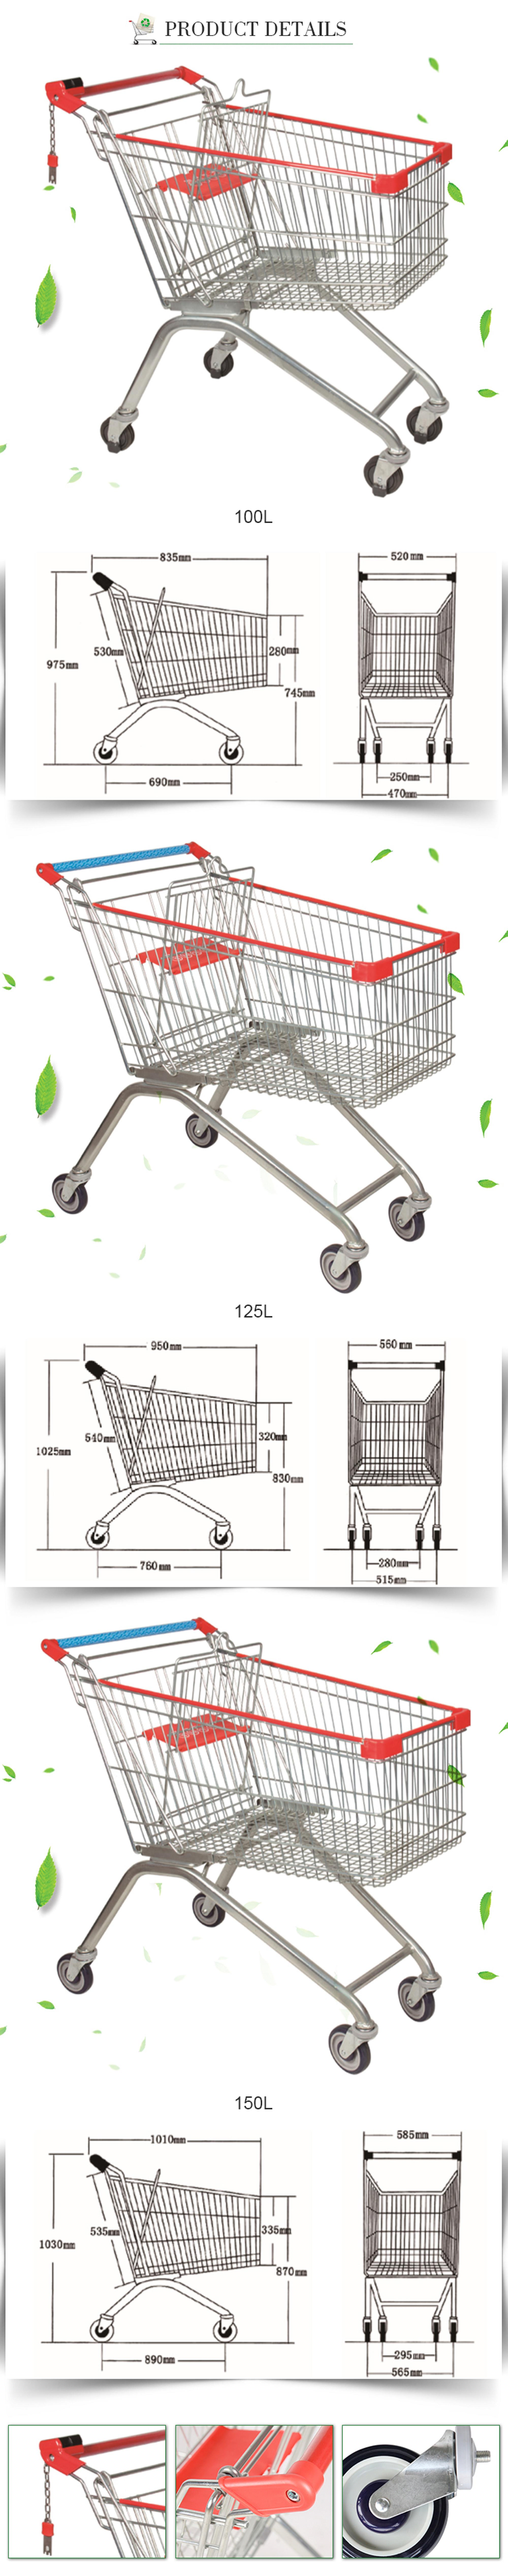 150L China wholesale supermarket shopping cart trolley